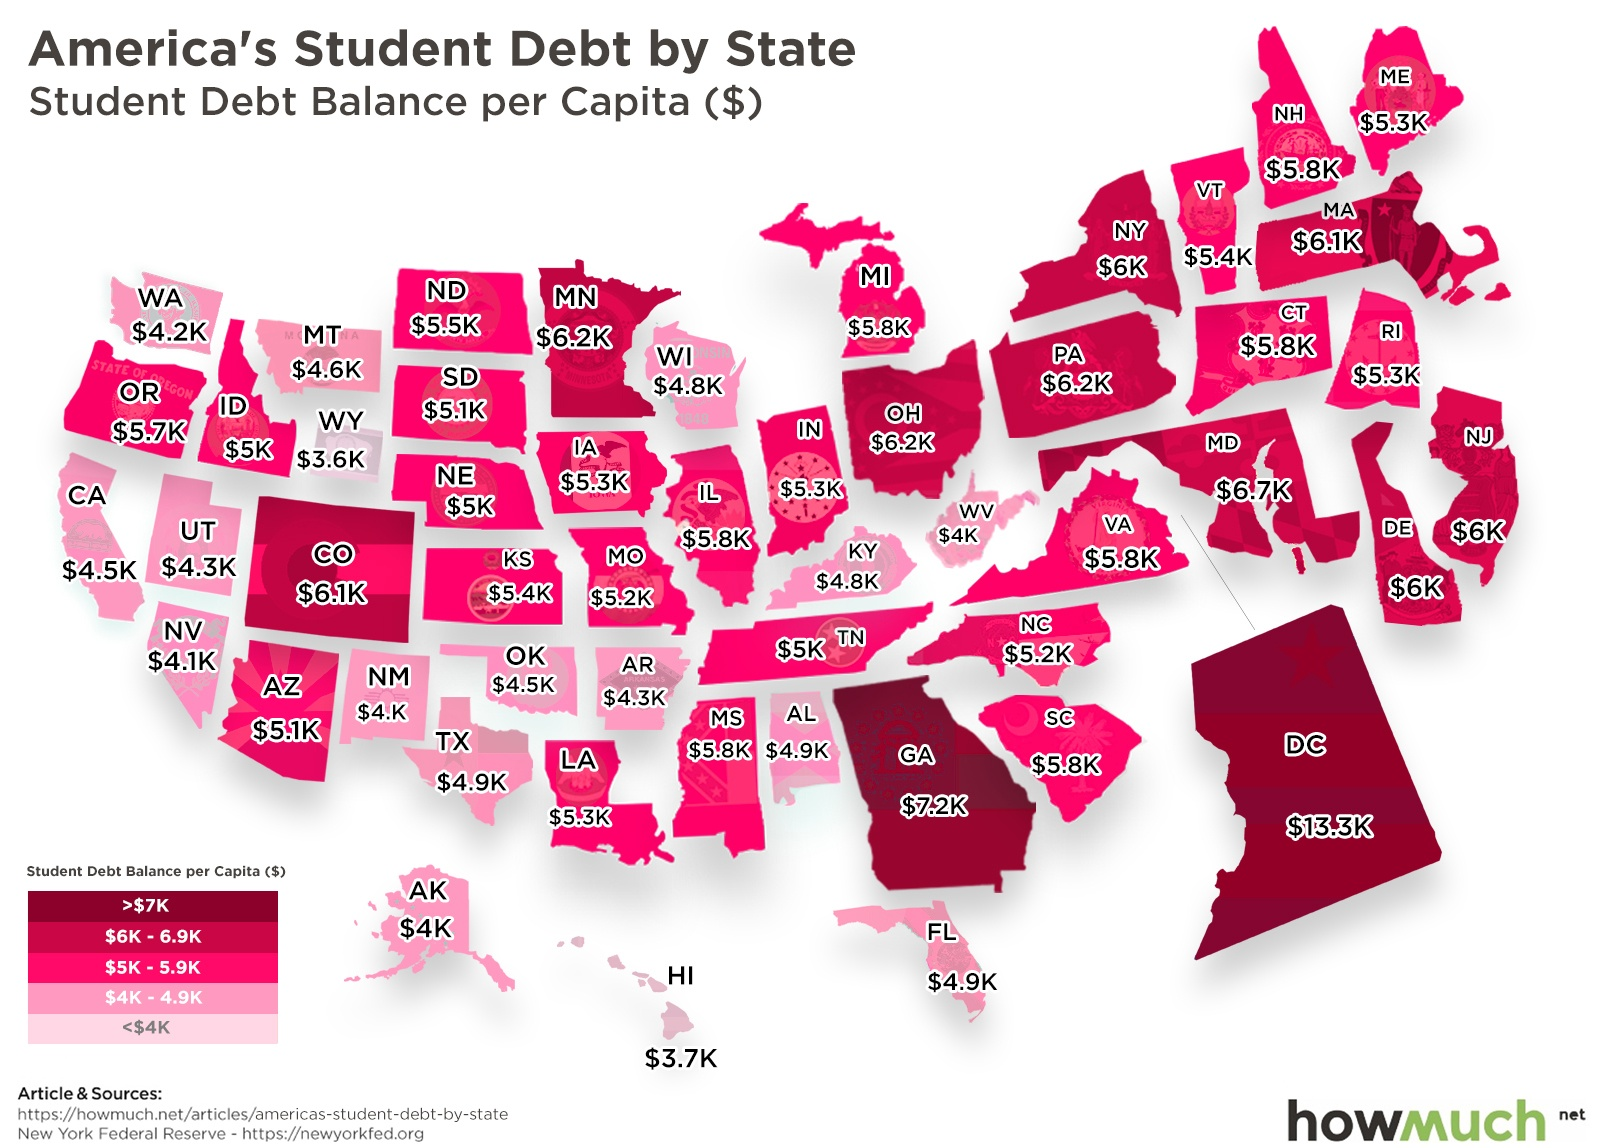 9-10-19 america_student_debt_by_state-40fe